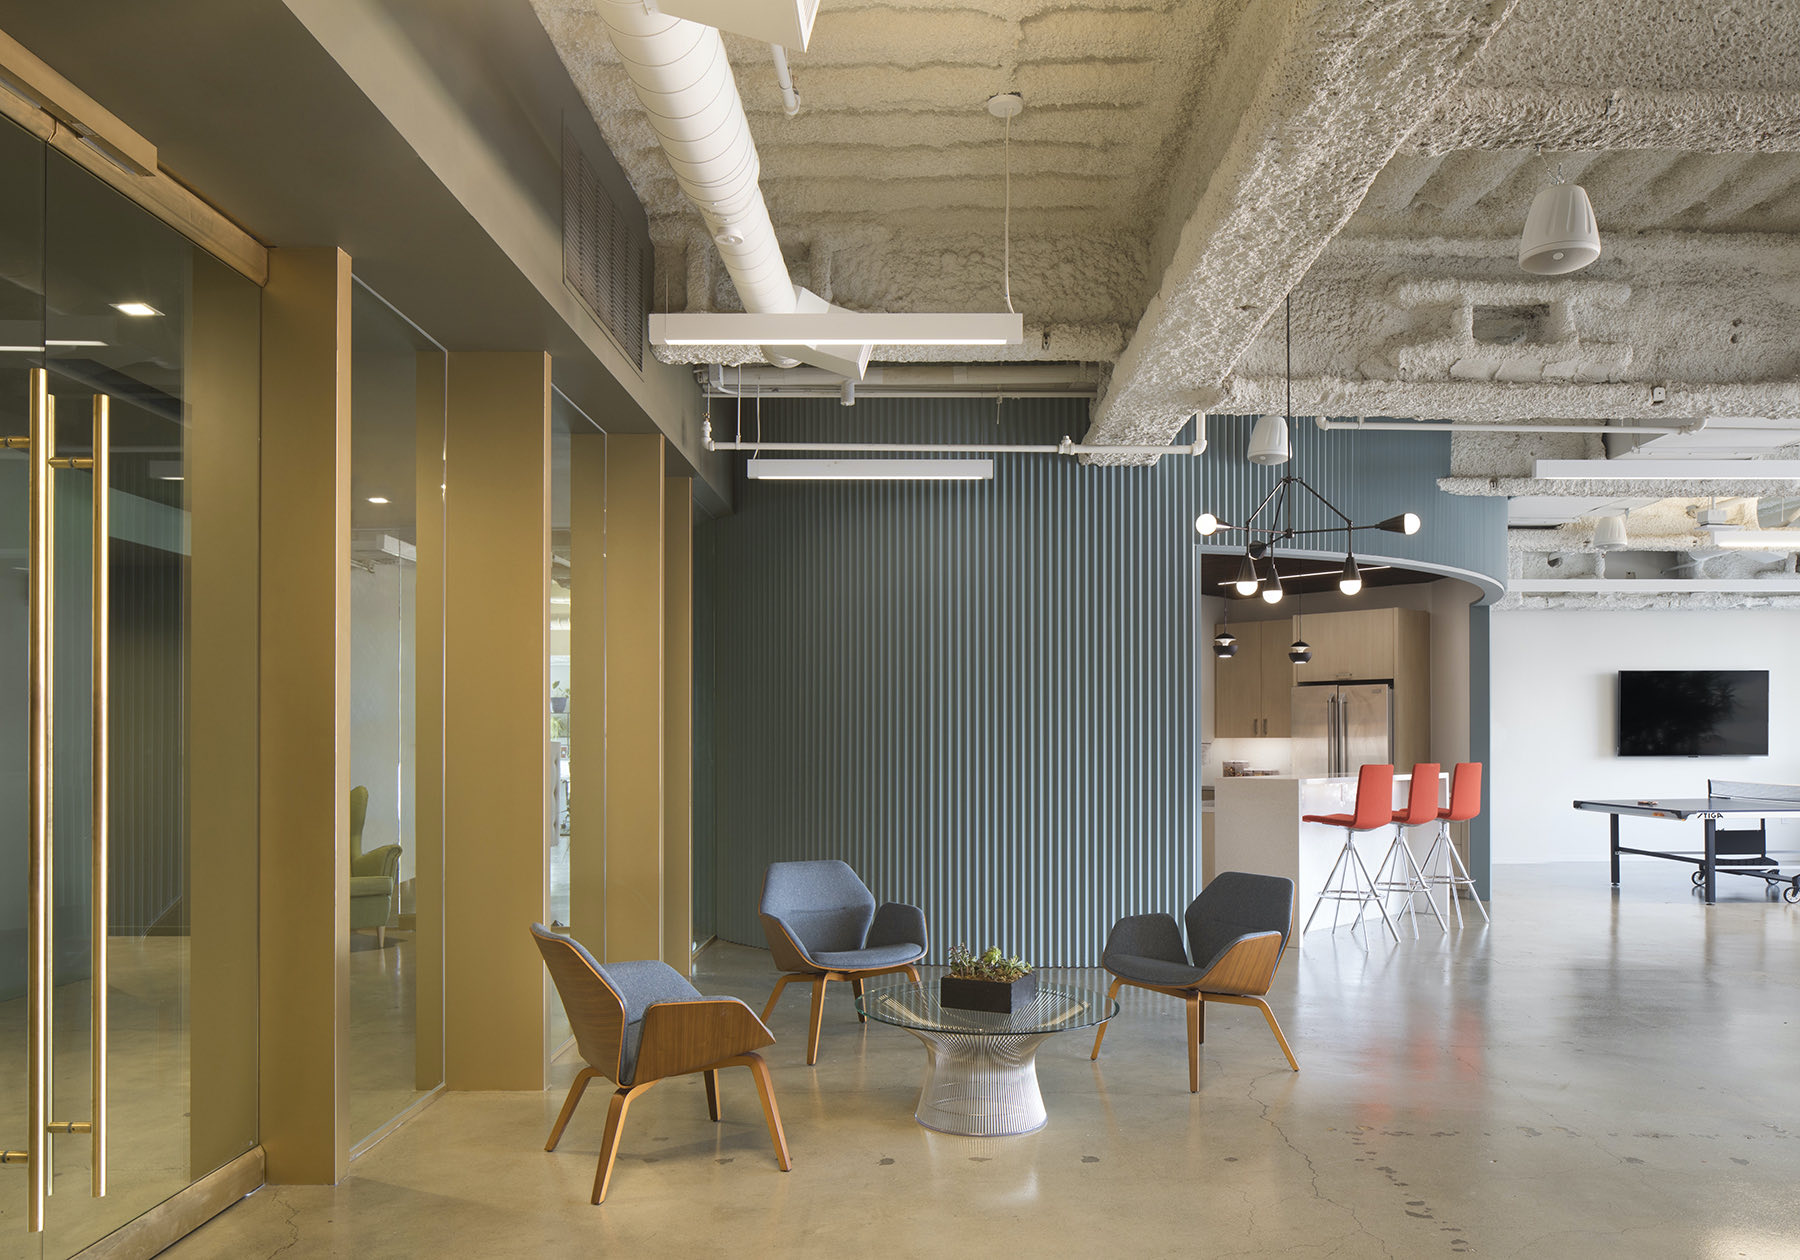 A Look Inside Battery Ventures' New San Francisco Headquarters